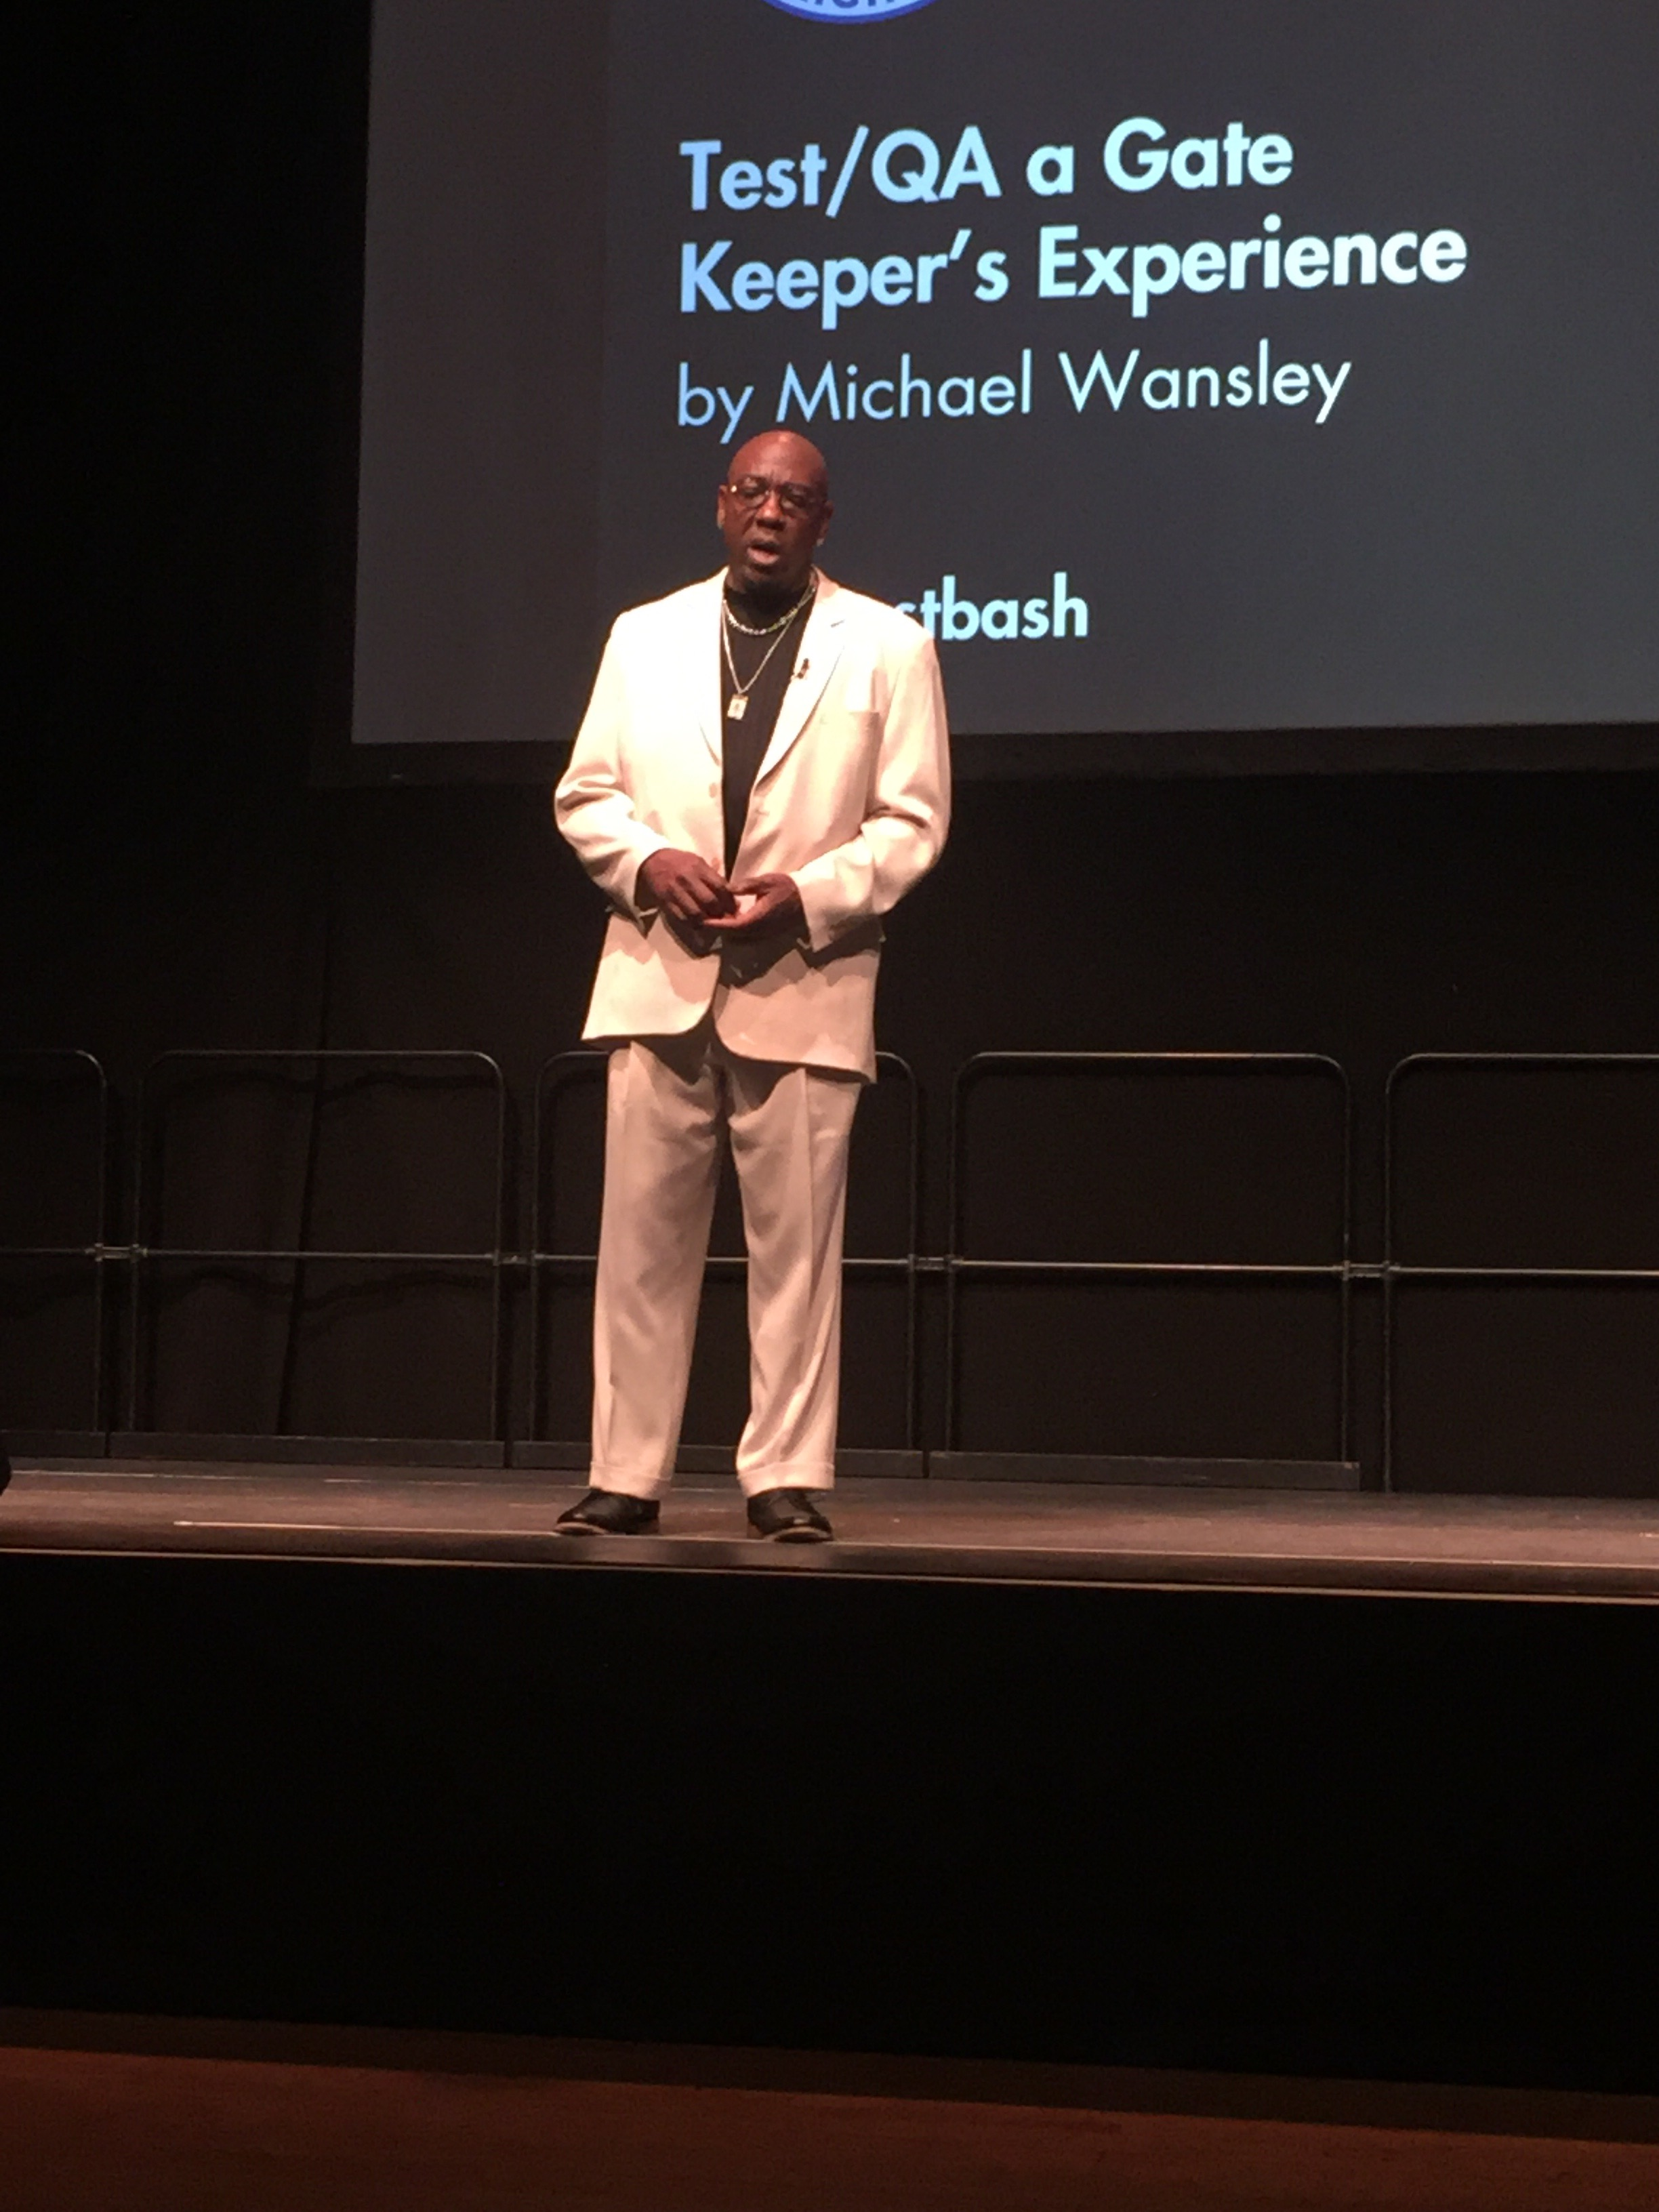 Michael Wansley